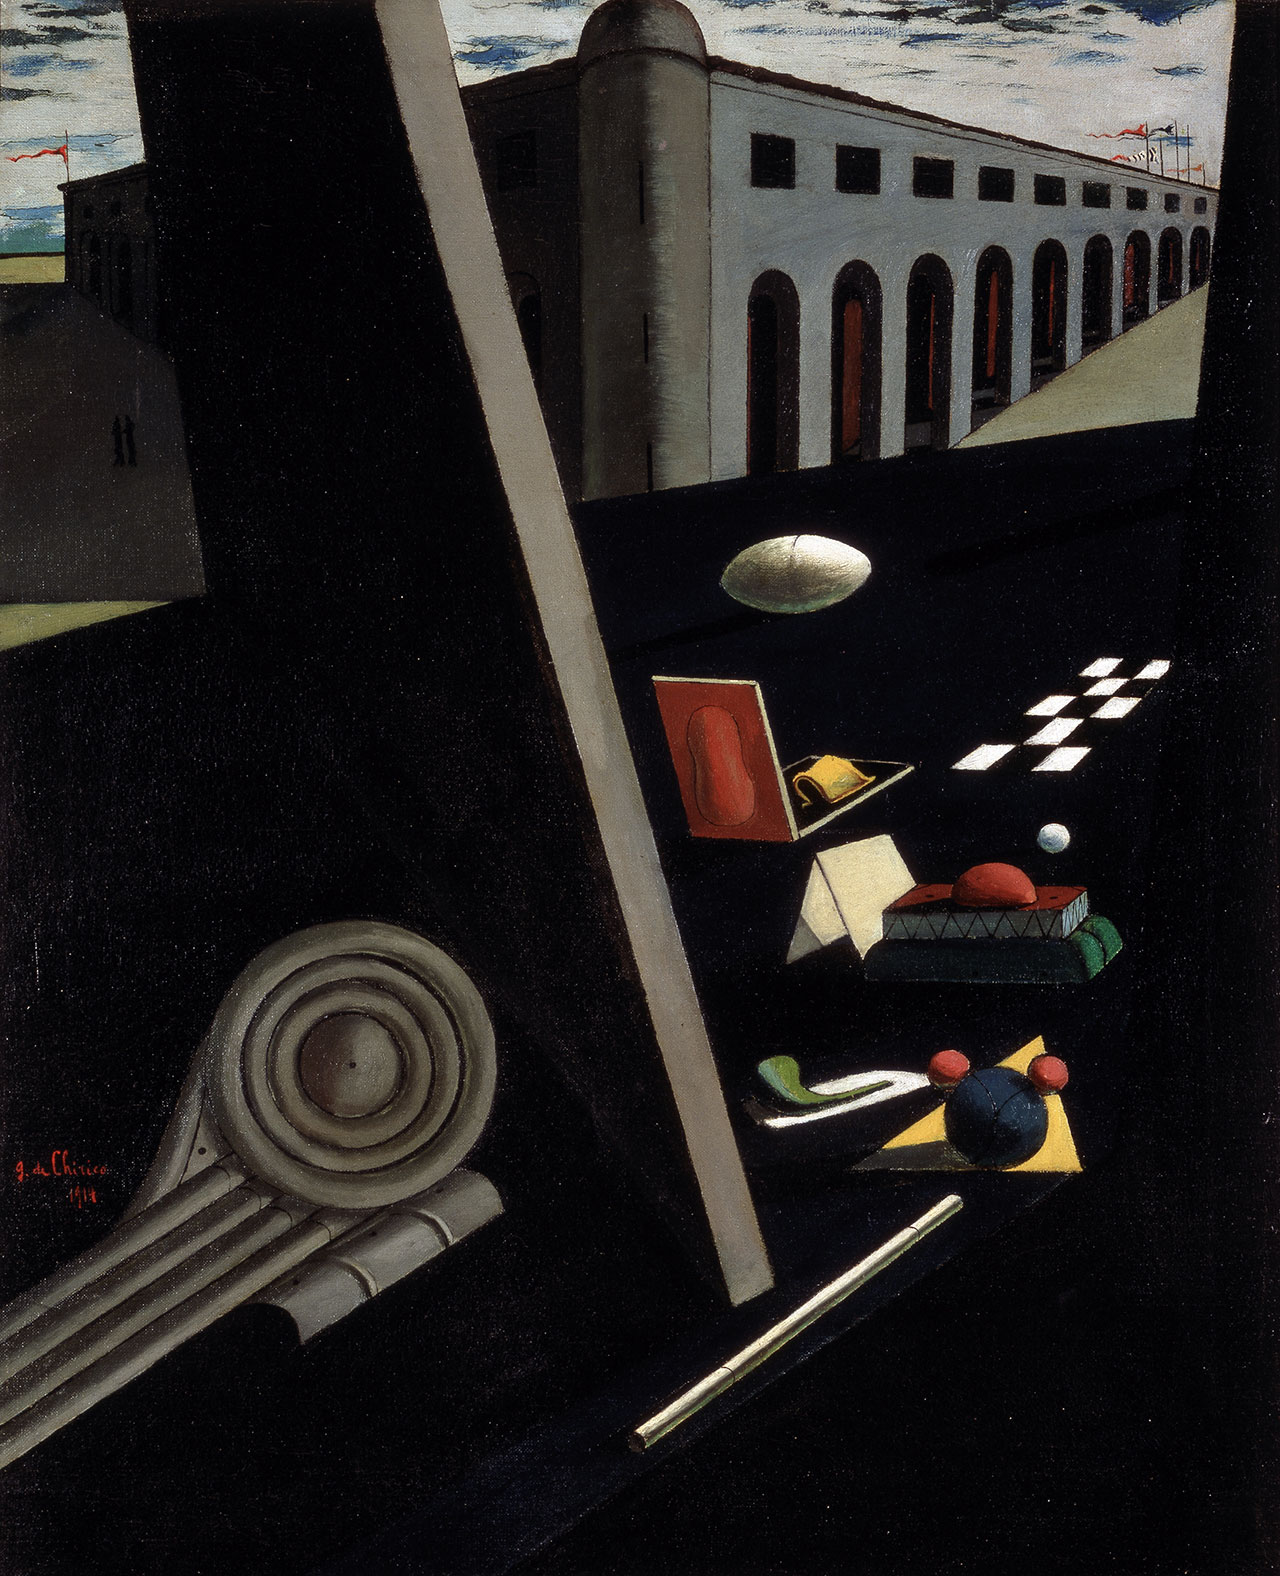 Giorgio De Chirico, Le caserme dei marinai, 1914, oil on canvas, 81,3 x 64,8 cm. Courtesy Norton Museum of Art, West Palm Beach. Photo: Norton Museum of Art, West Palm Beach, Florida, Bequest of R.H. Norton, 53.30 © Giorgio De Chirico by SIAE 2018.